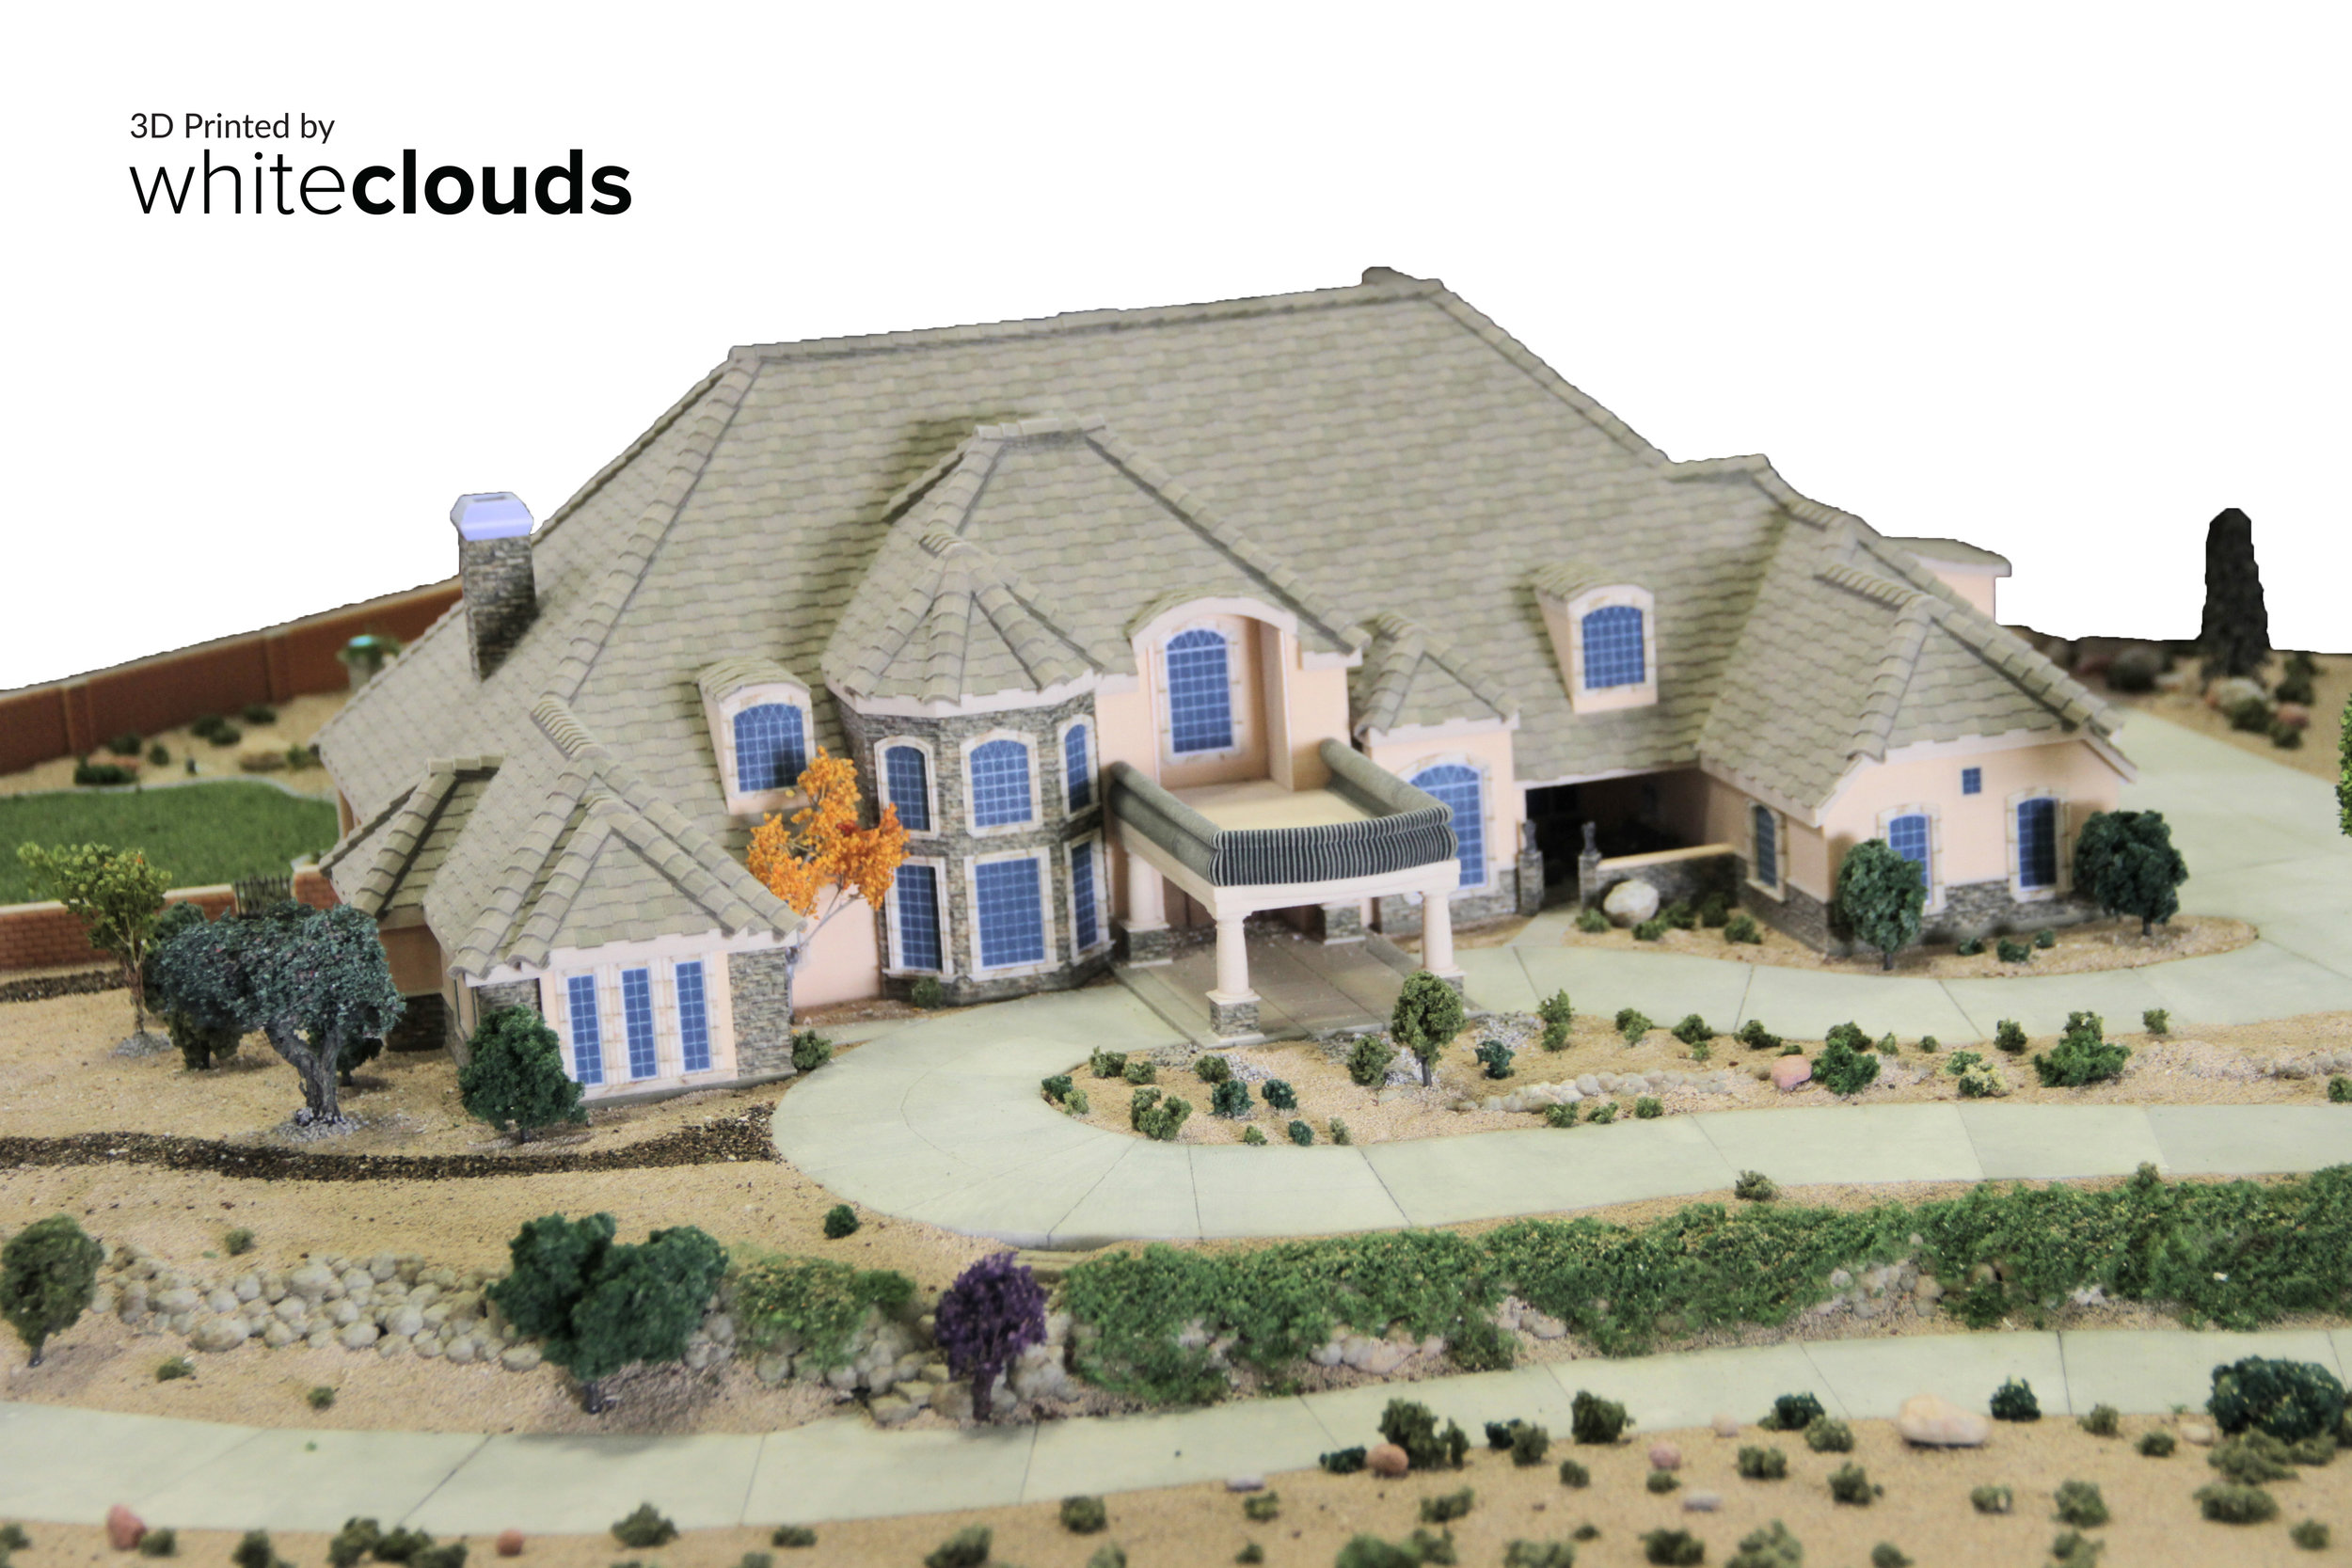 3D-Printed-WhiteClouds-House-Architectural-St.-George-House-4.jpg